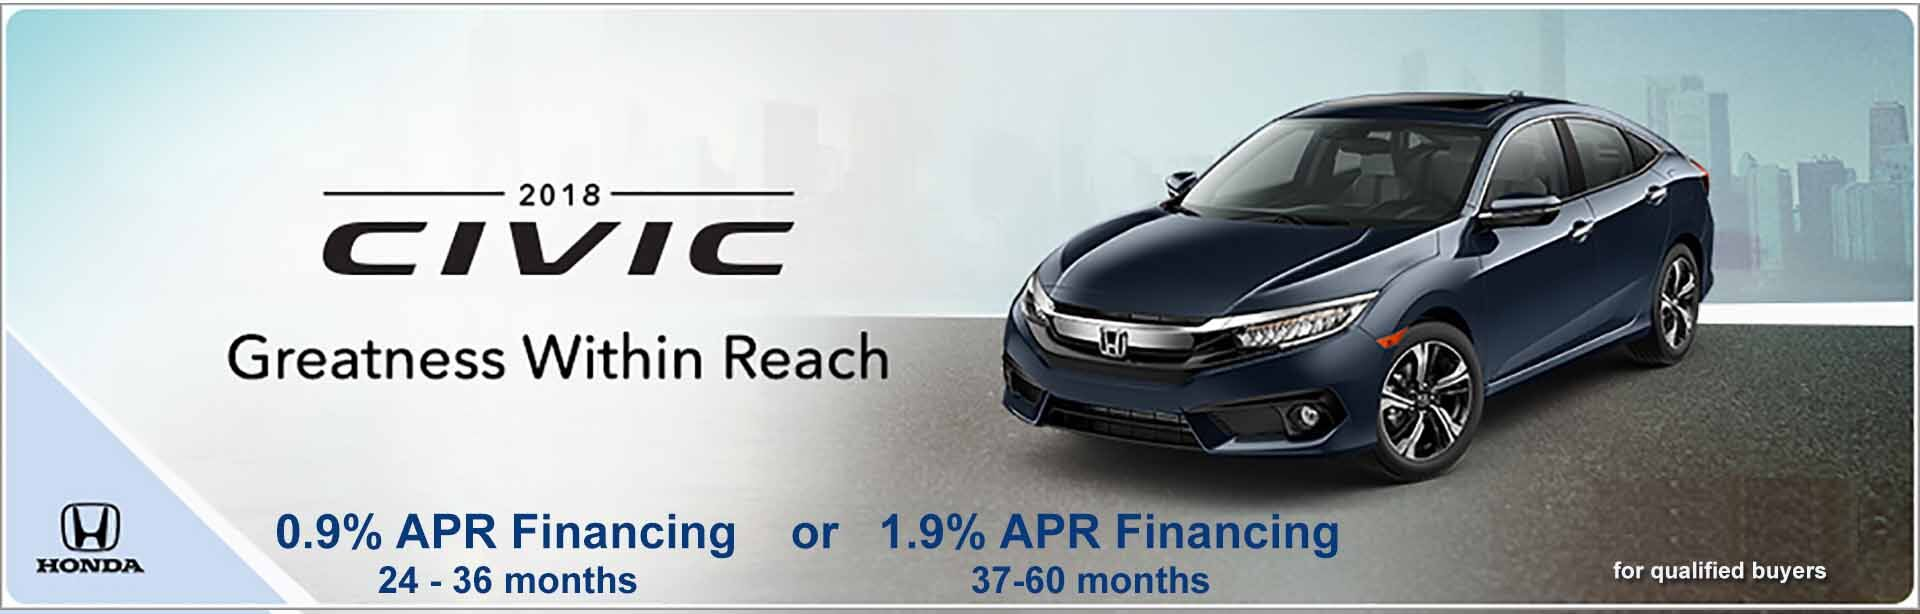 2018 Civic 0.9% APR